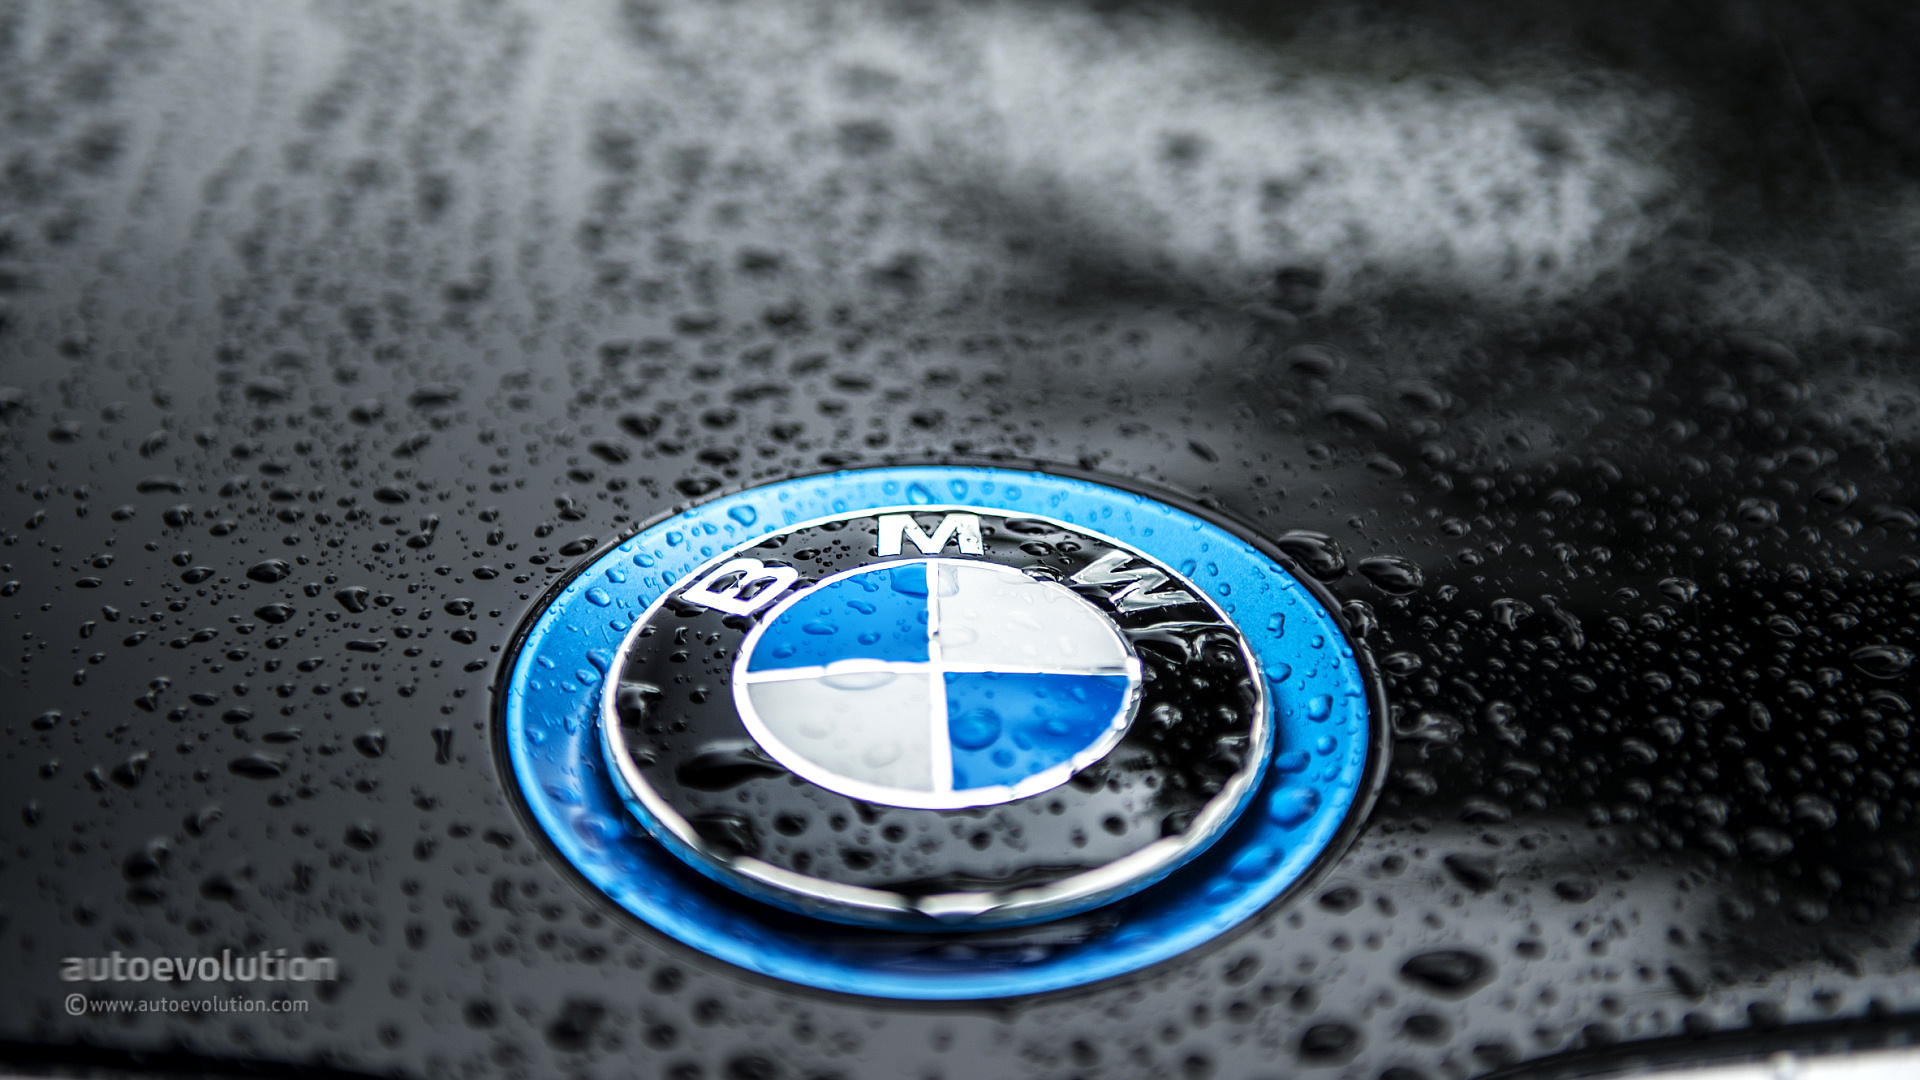 Bmw Is Looking To Hire 8000 New Employees This Year Autoevolution